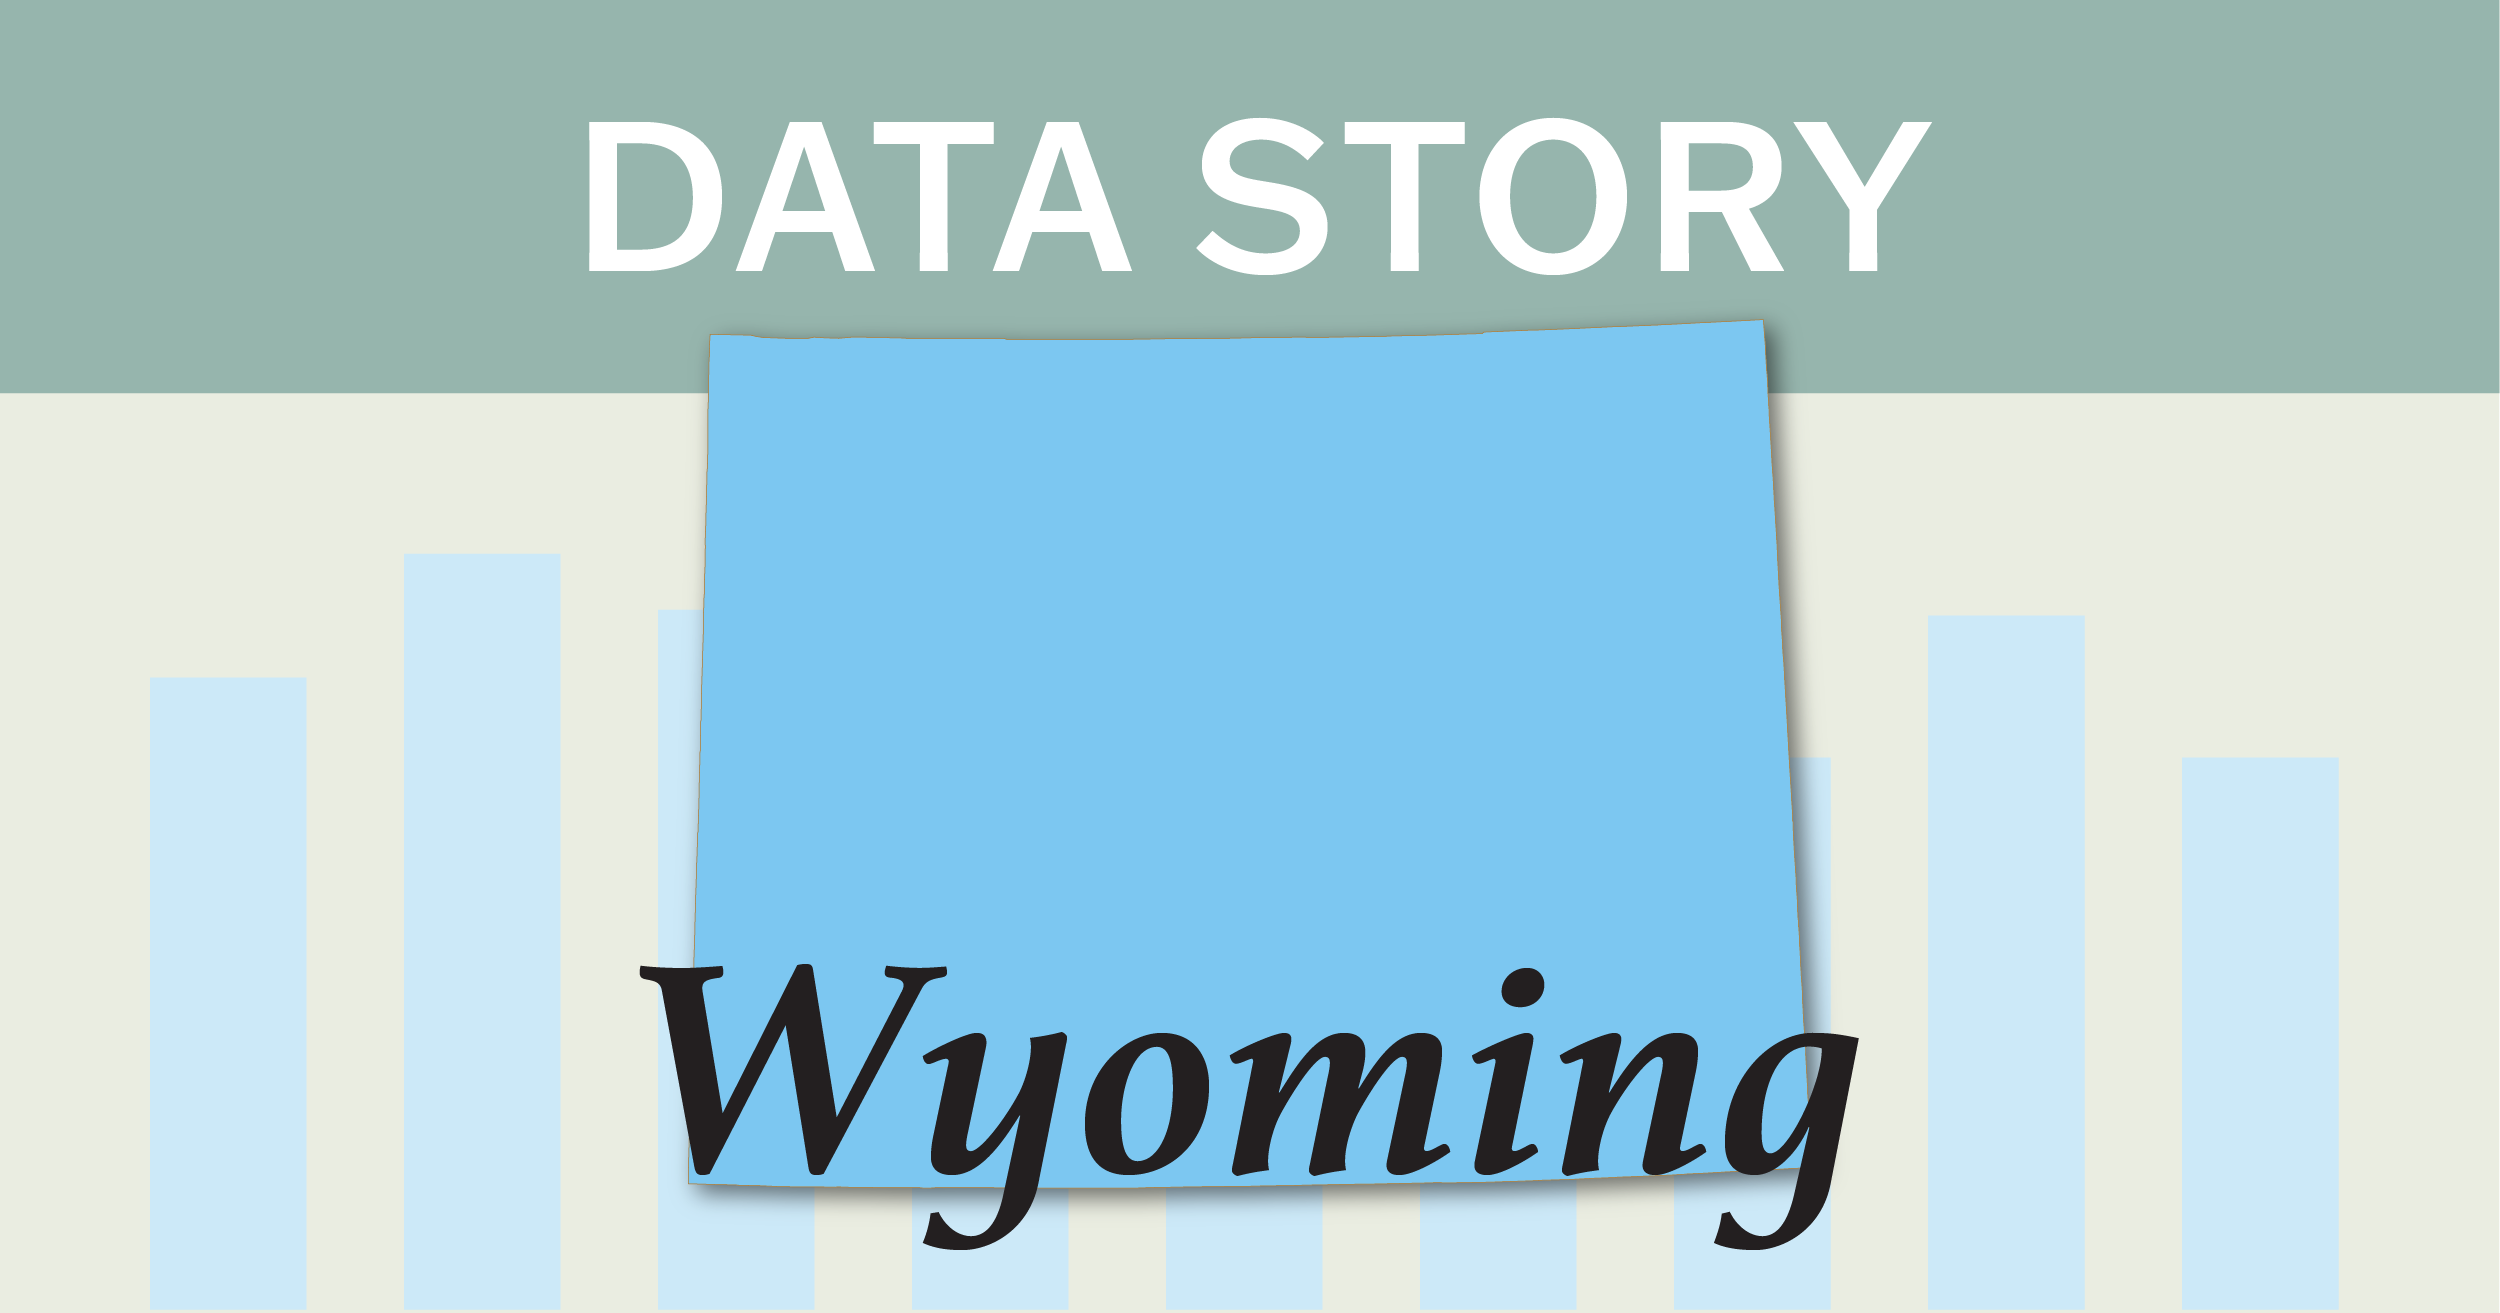 Outline of the state of Wyoming.